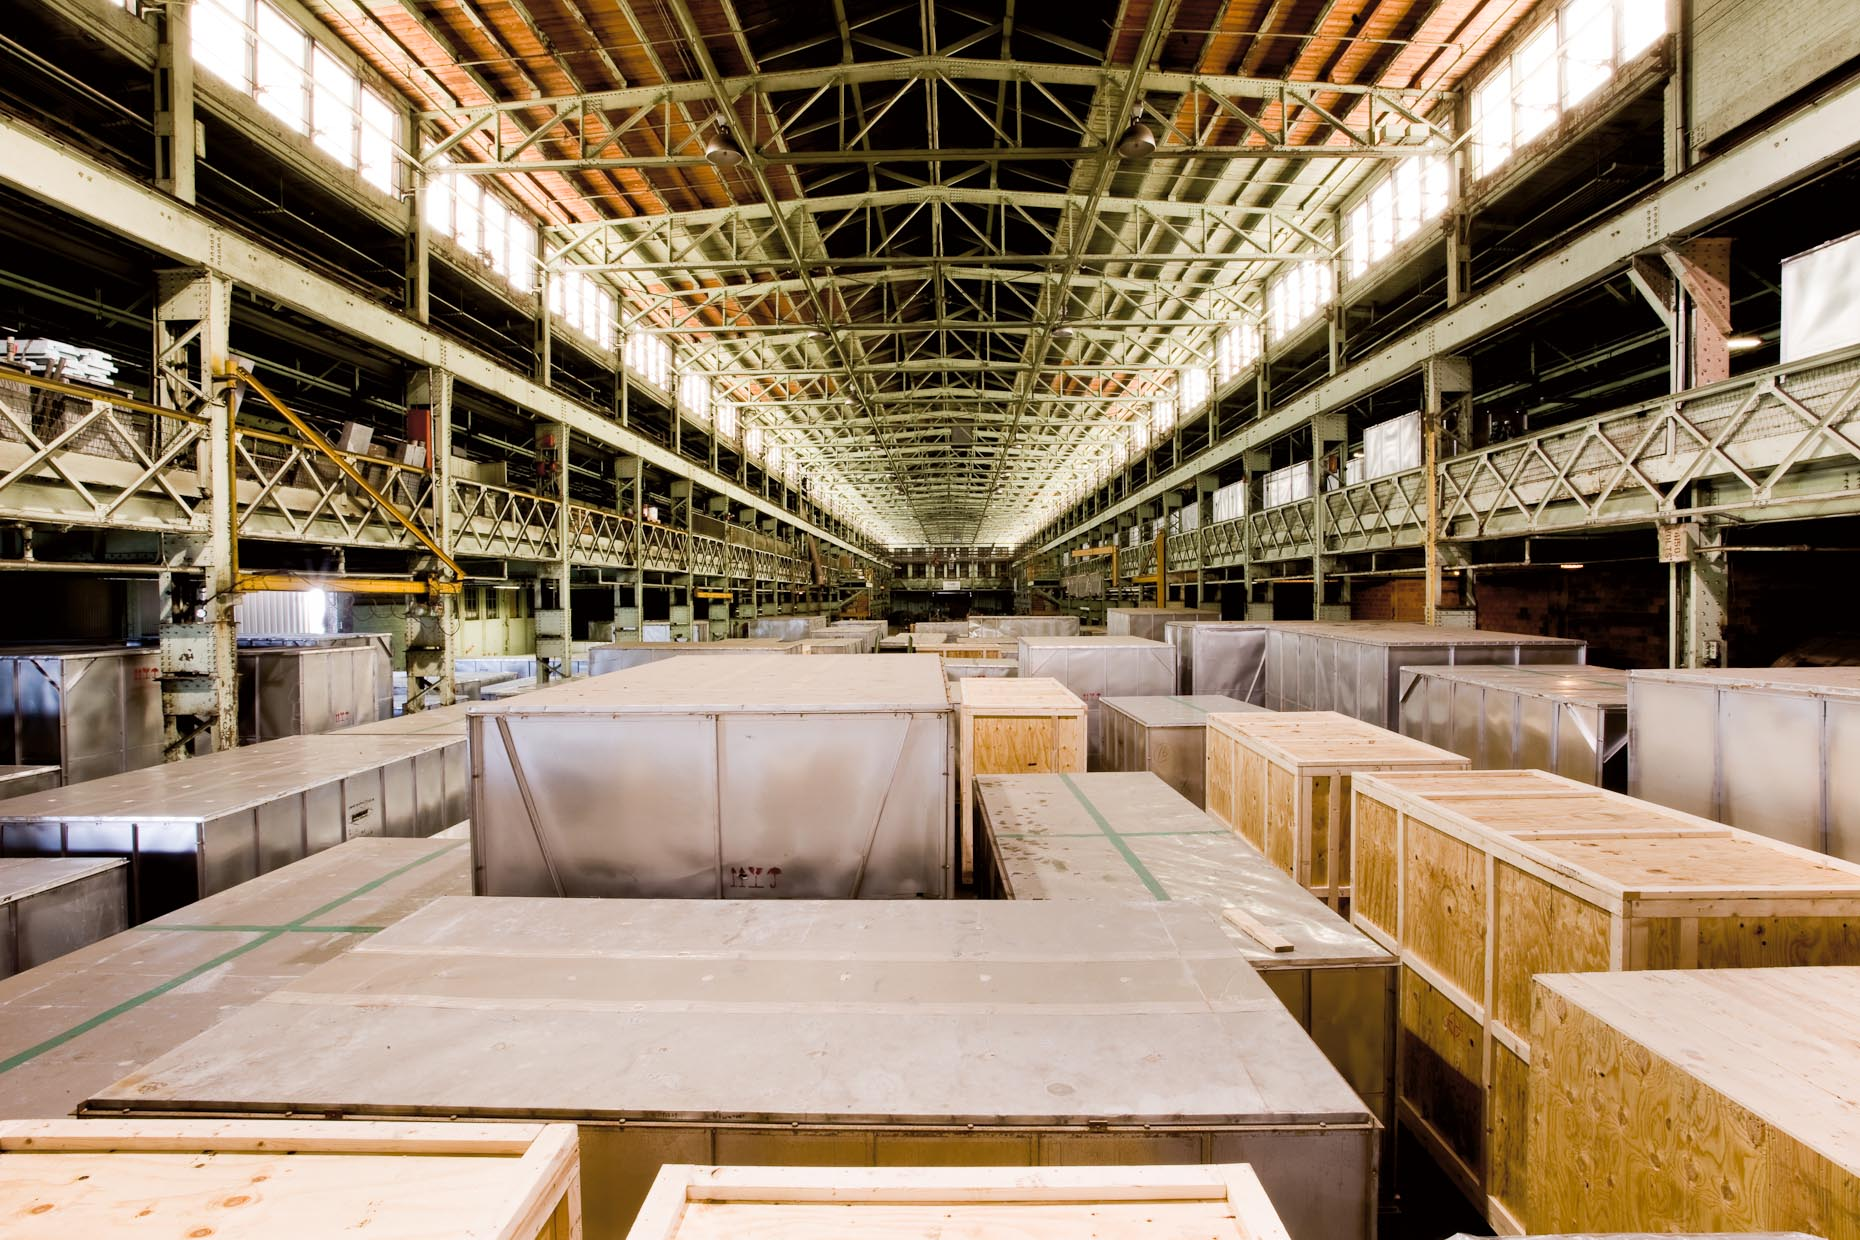 p60,p61_WAREHOUSE.jpg